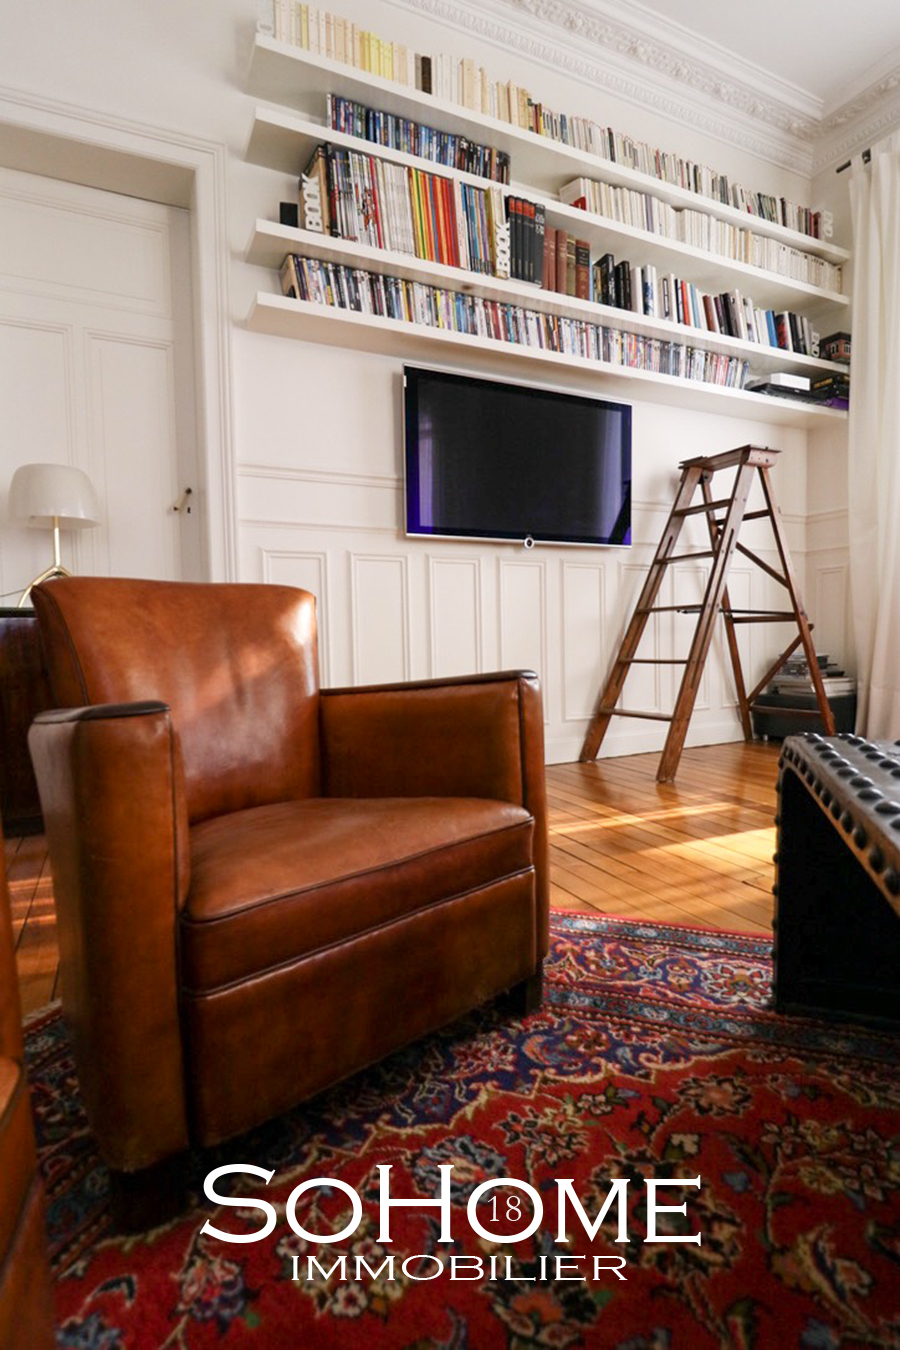 SoHome-Appartement-V-10.jpg